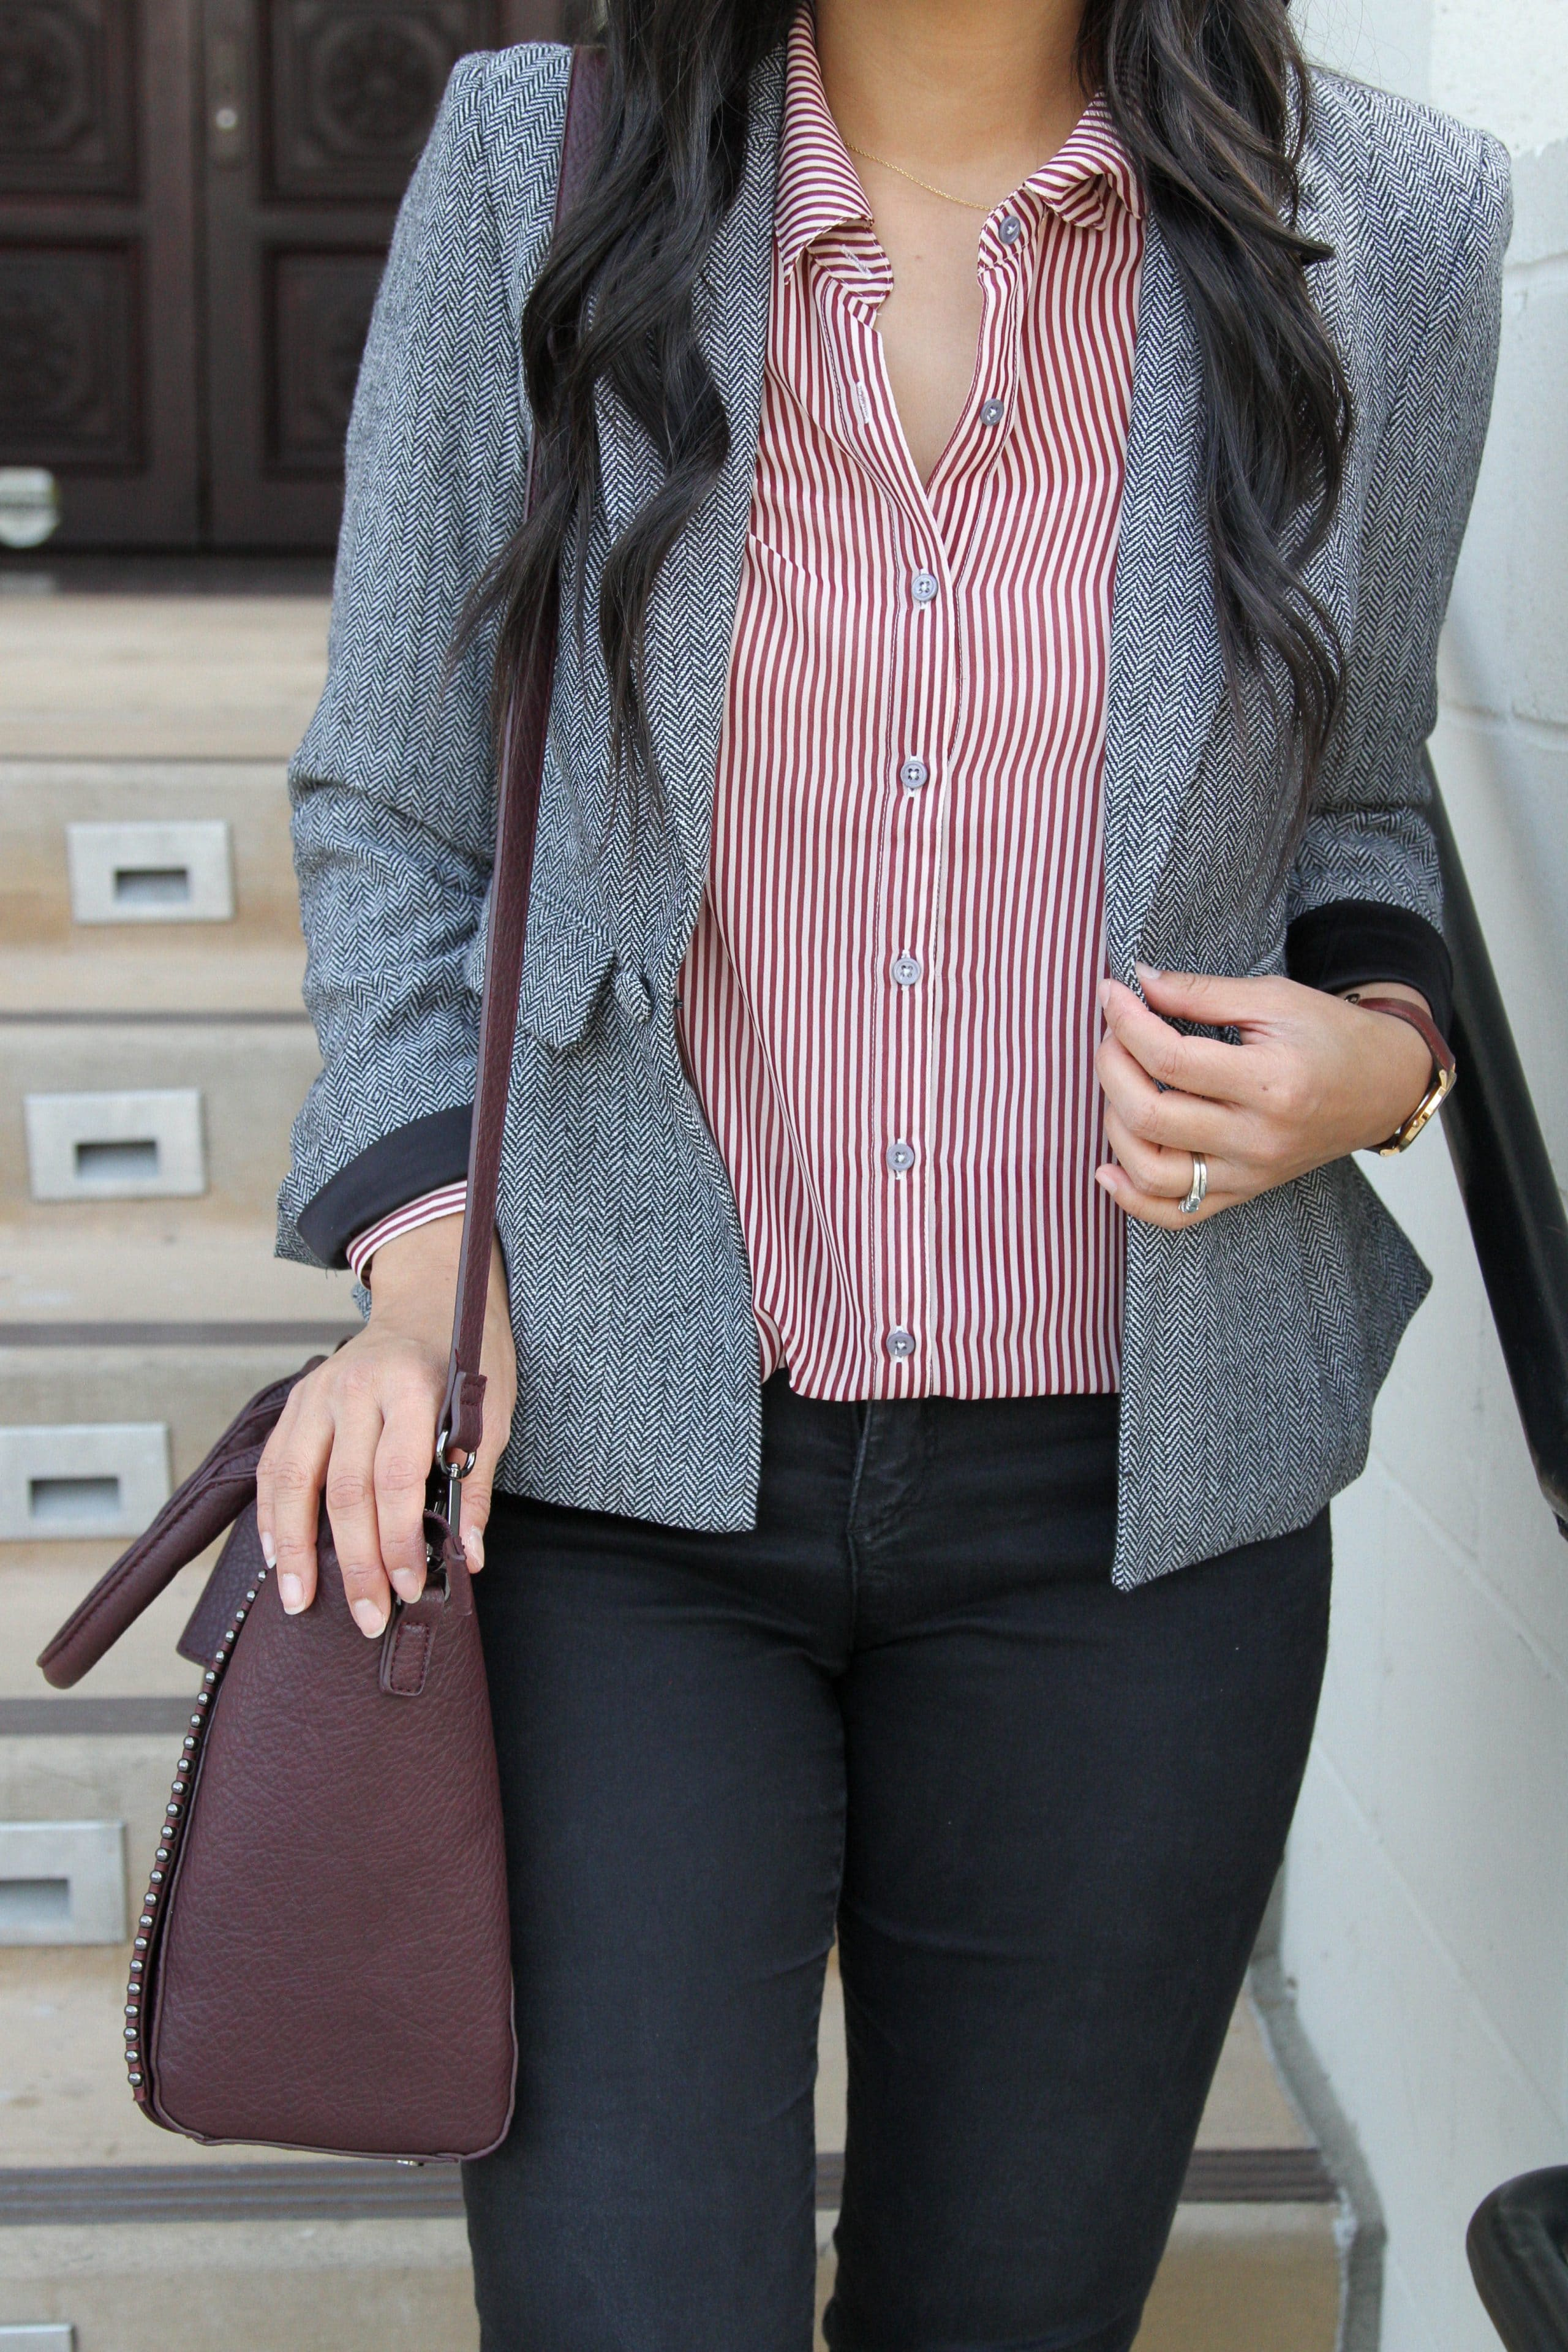 Striped Blouse + Grey blazer + Black Skinnies + Maroon Bag